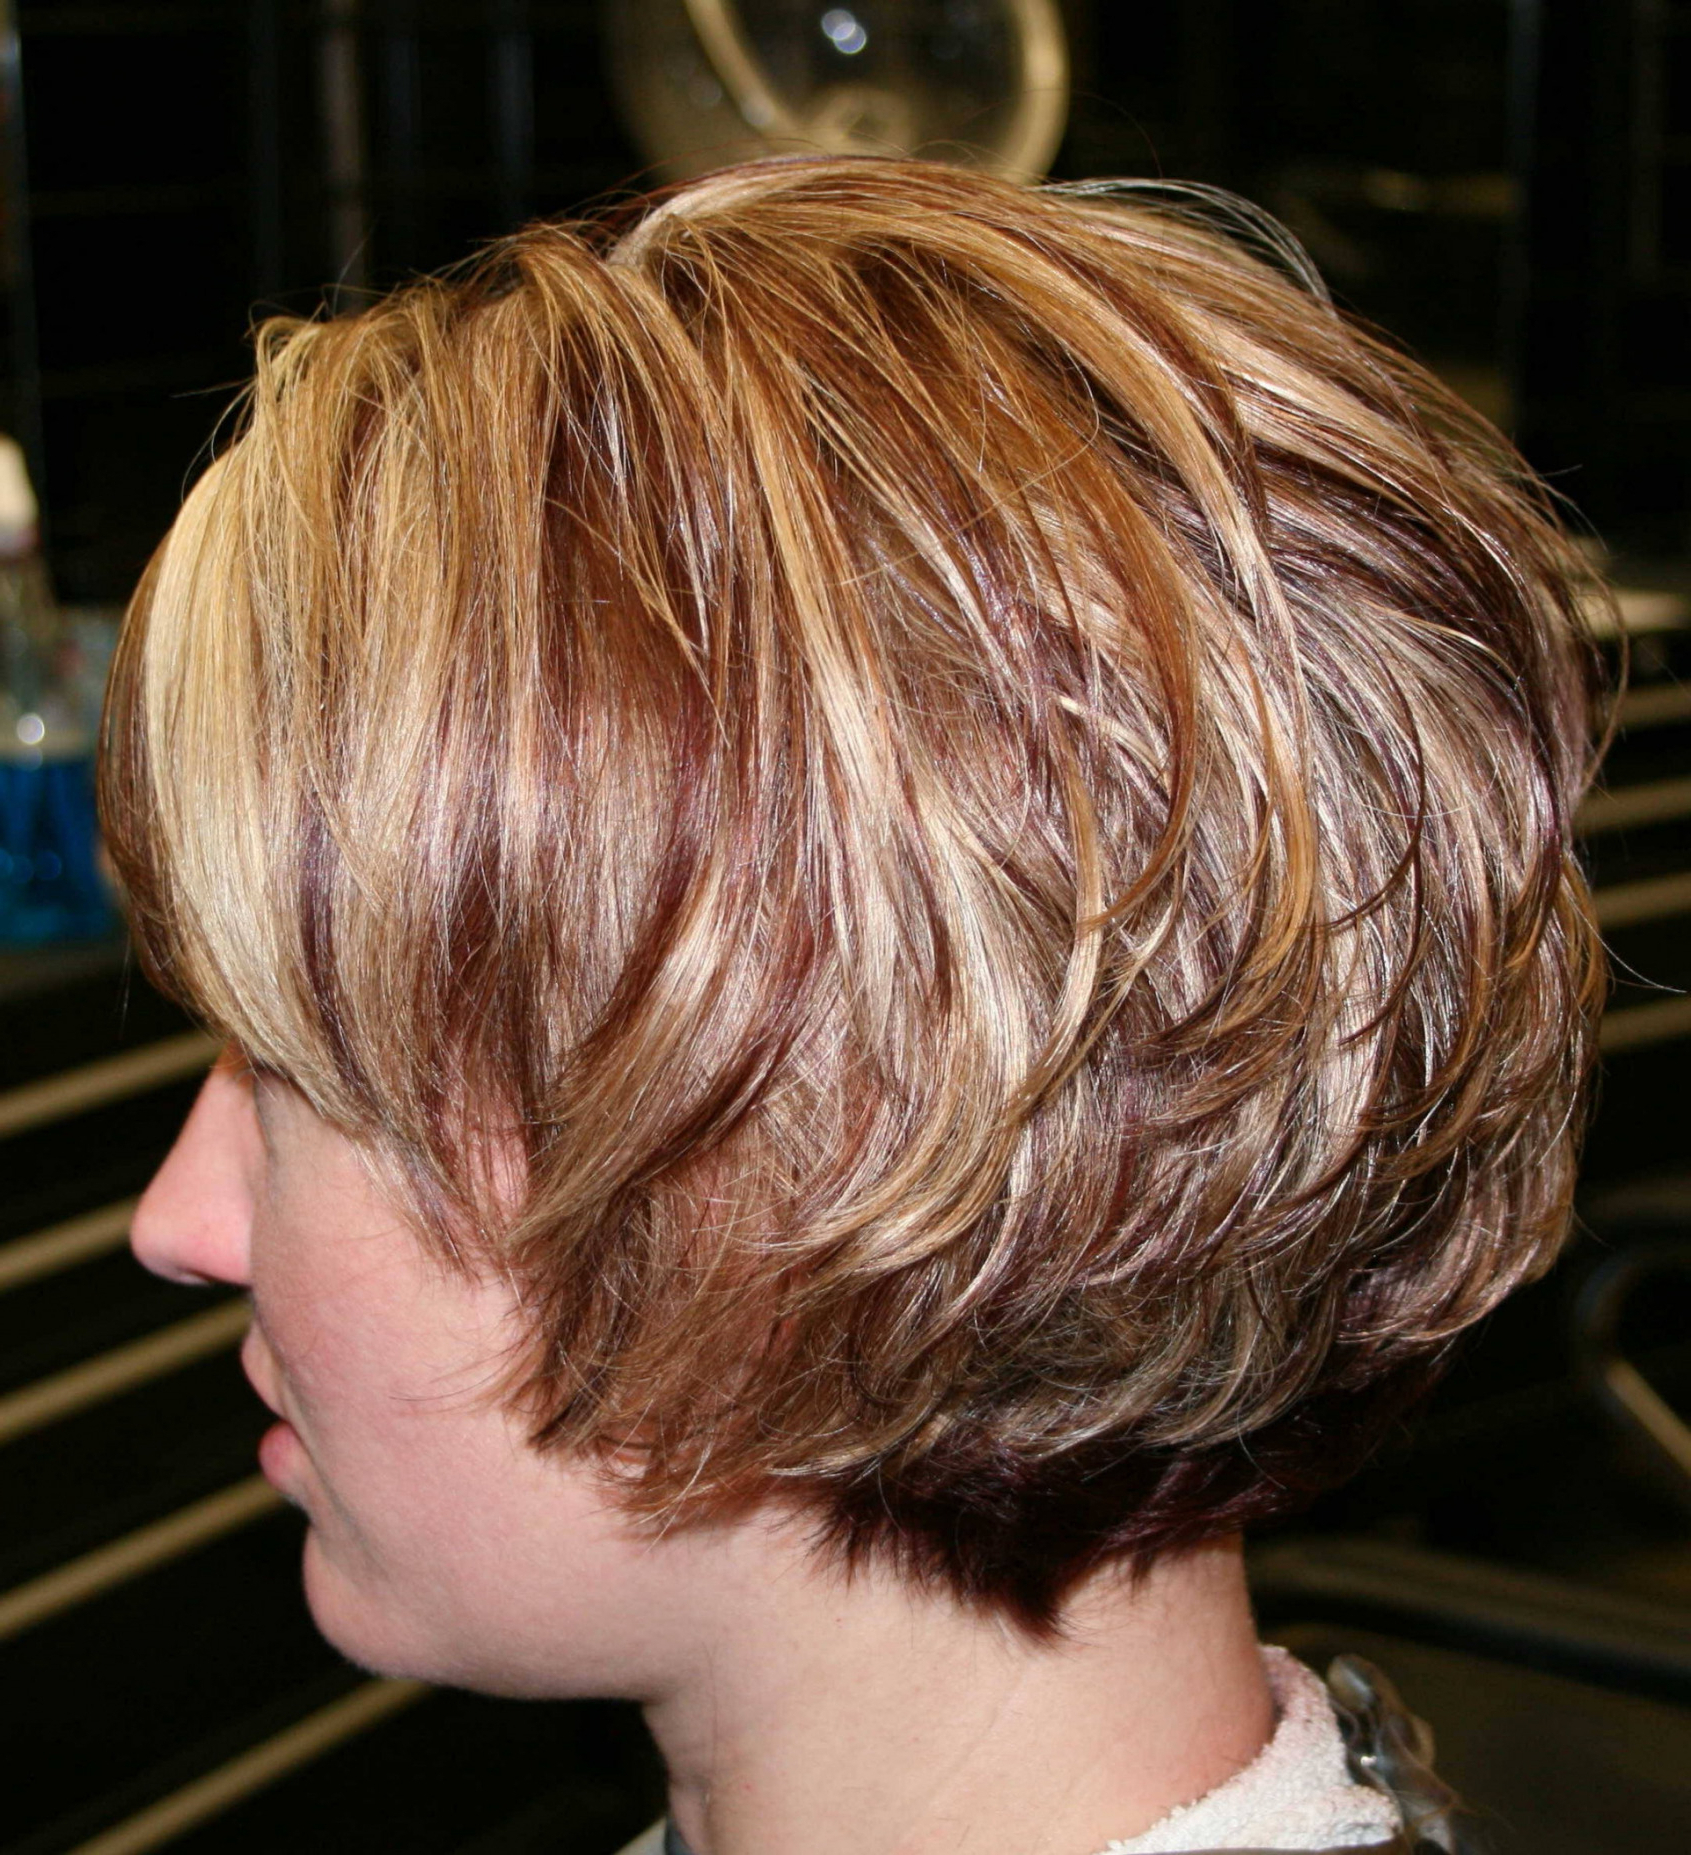 Short Layered Bob Hairstyles For Thick Hair | Hairstyle For Women With Short Layered Hairstyles For Thick Hair (View 12 of 20)